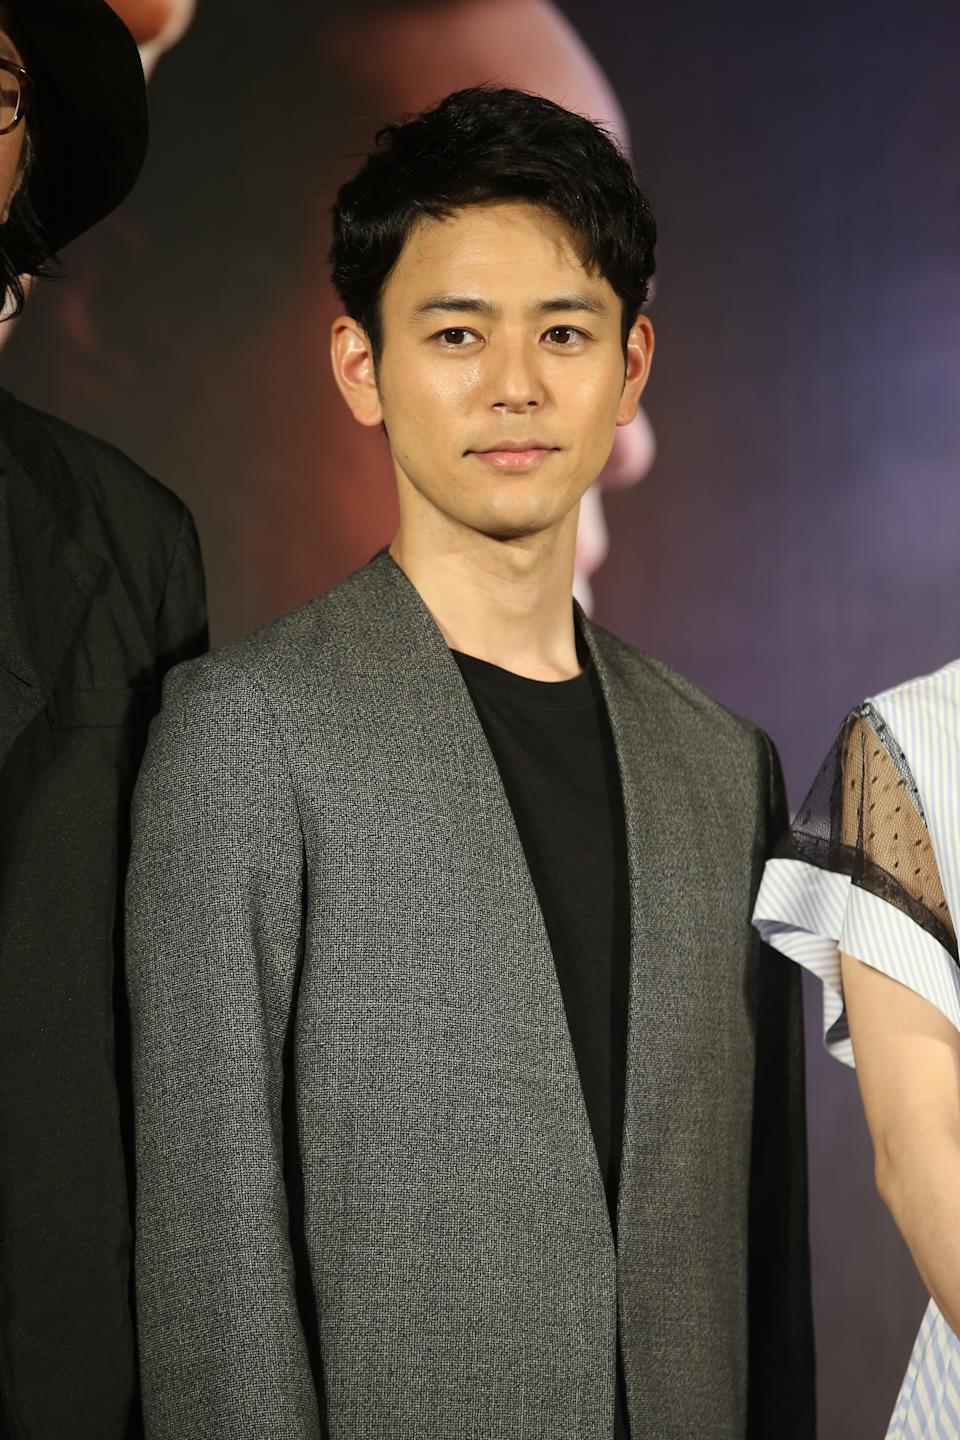 TAIPEI, CHINA - APRIL 29: Japanese actor Satoshi Tsumabuki attends a press conference of movie 'Paradise Next' on April 29, 2019 in Taipei, Taiwan of China. (Photo by Visual China Group via Getty Images/Visual China Group via Getty Images)